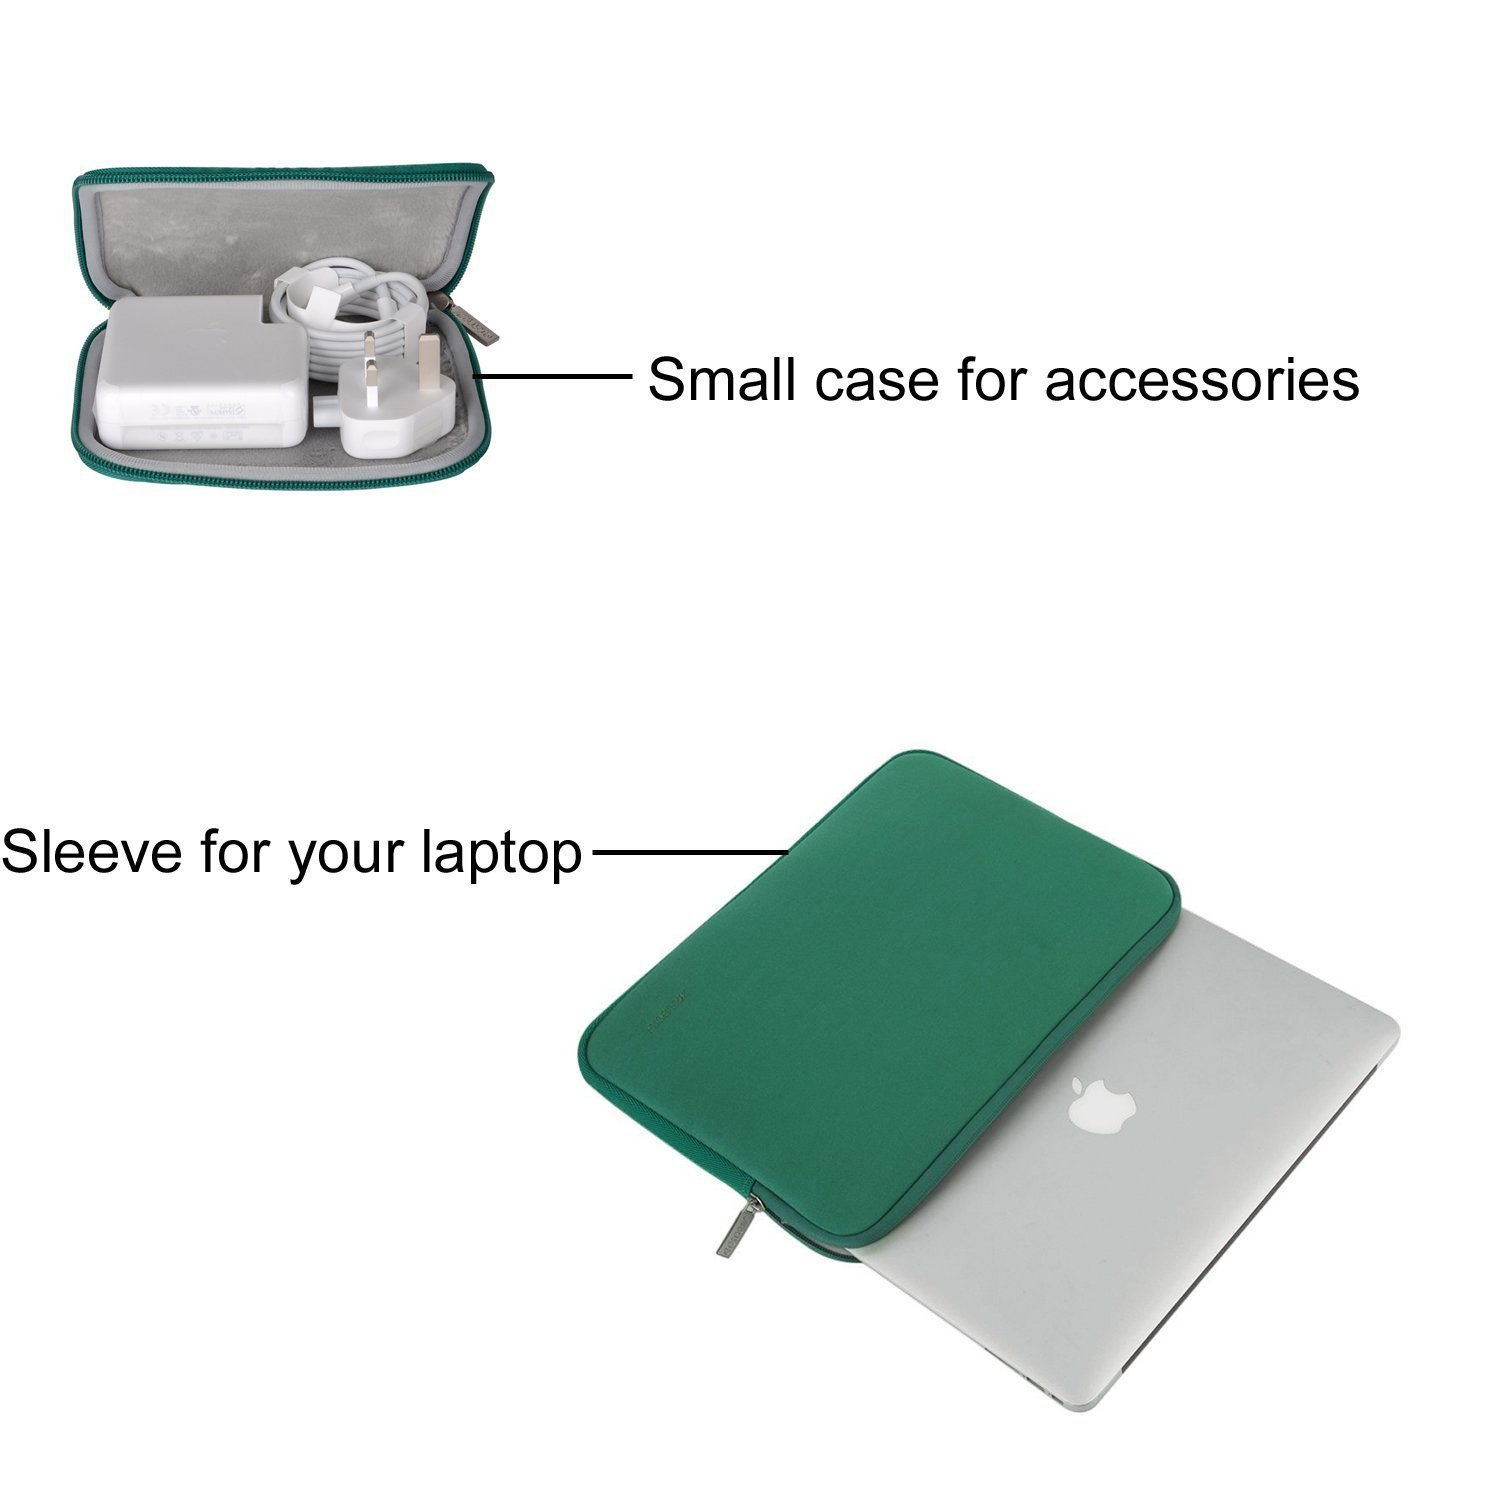 MOSISO Laptop Sleeve Bag Compatible 15 Inch MacBook Pro Touch Bar A1990 A1707 Greenery Water Repellent Neoprene Tablet Cover with Small Case 14 Inch ThinkPad Chromebook